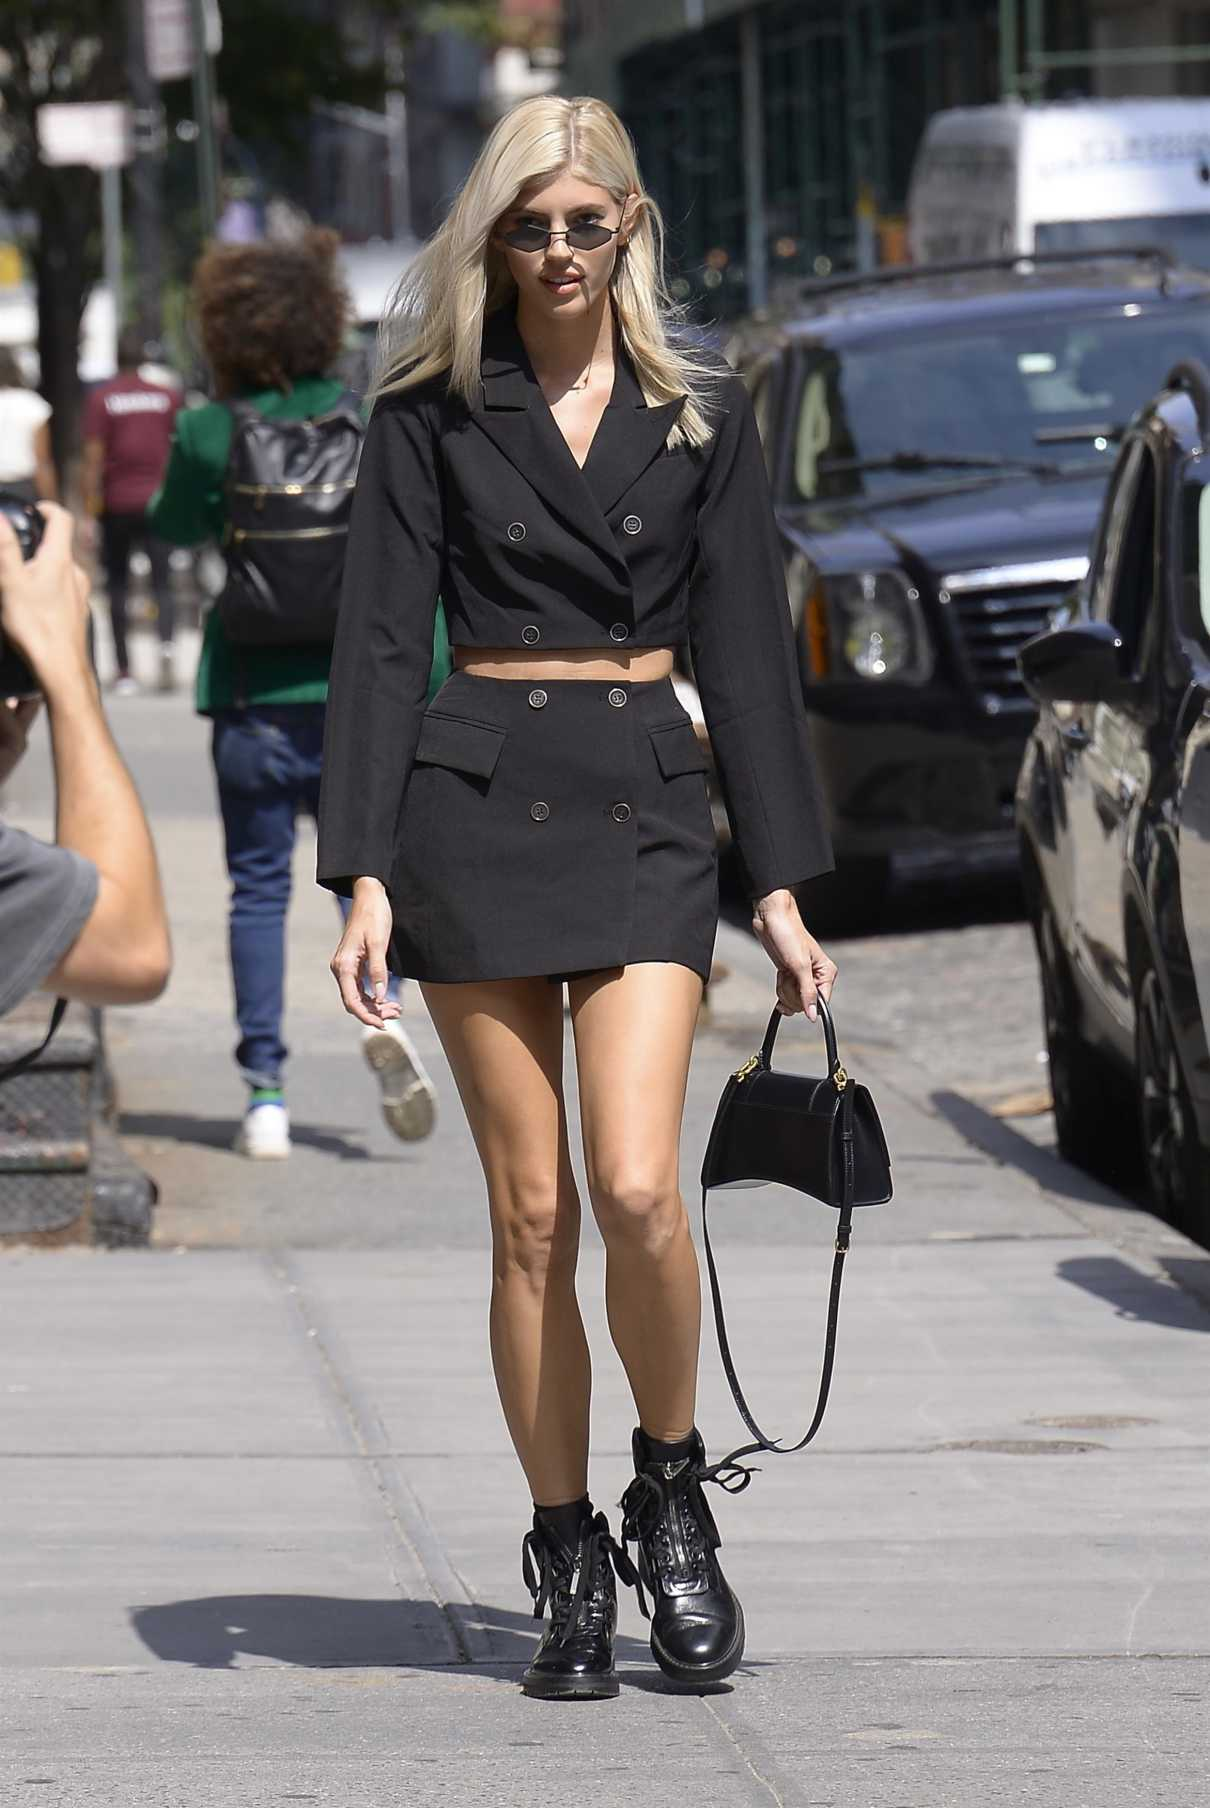 Devon Windsor in a Black Suit